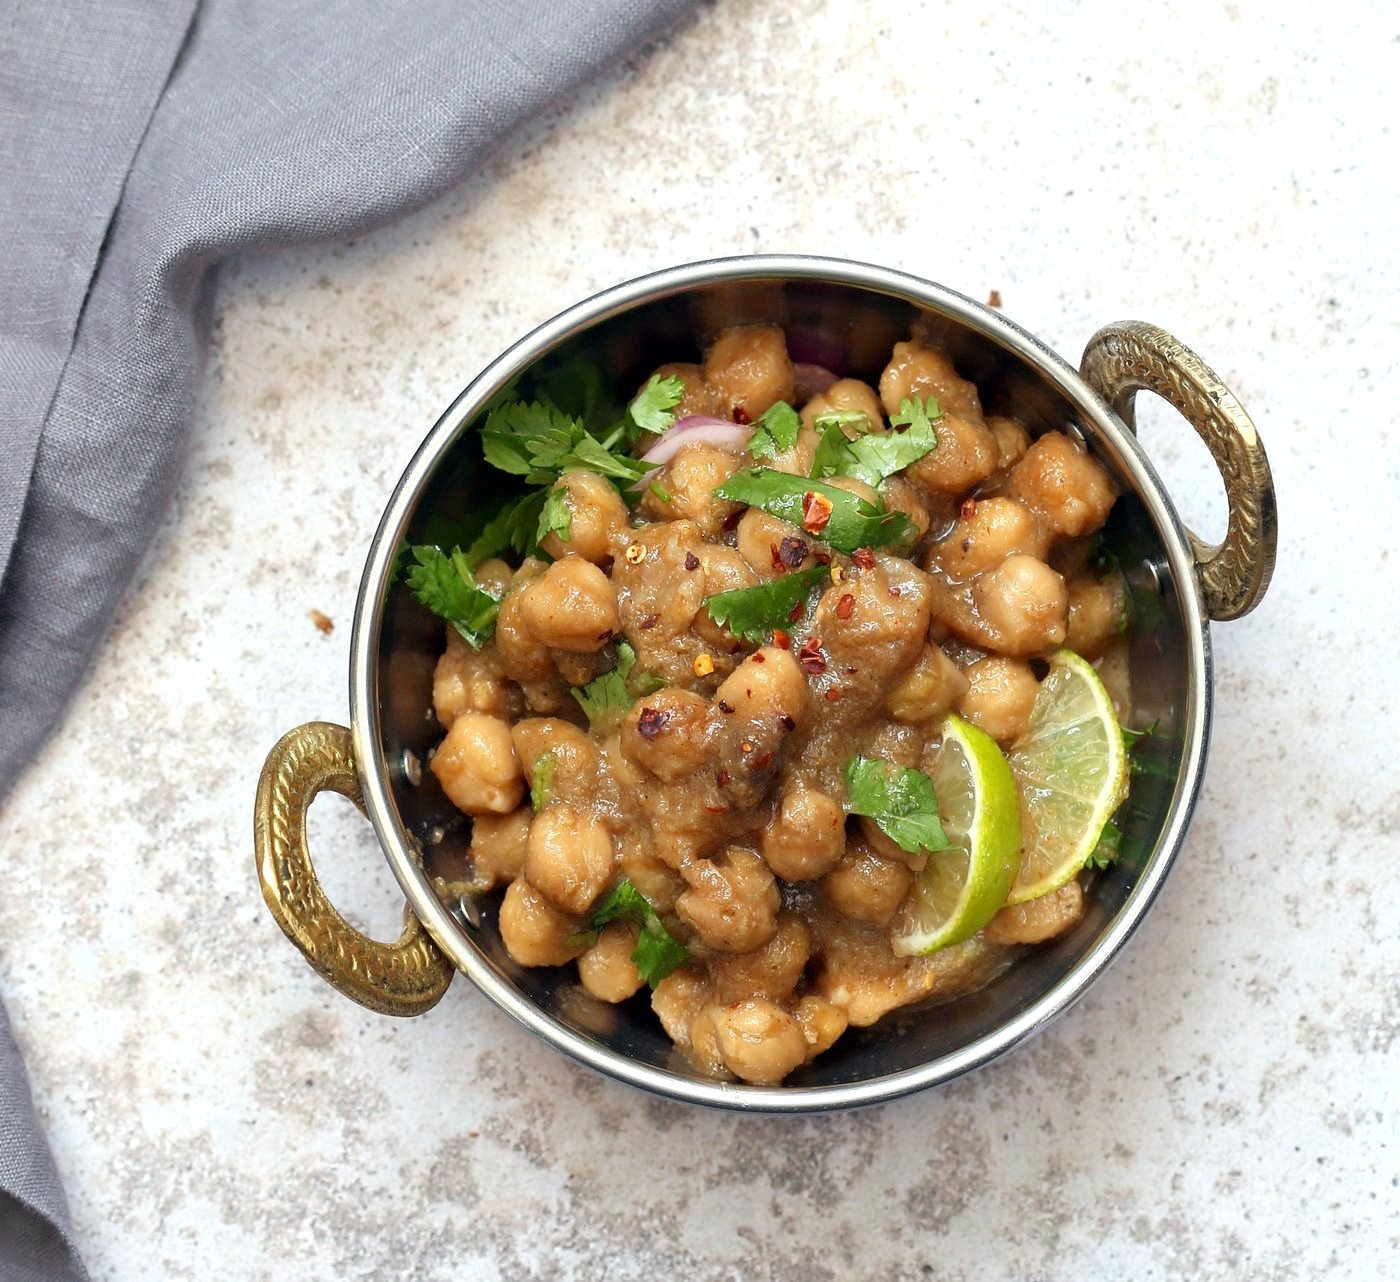 Pindi Chole - Chickpea Curry with Whole Spices. Chickpeas cooked with whole spices then added to a sauce with caramelized onions. Punjabi Chole Adapted from Rawalpindi style Chole. Vegan Gluten-free Nut-free Soy-free Recipe | VeganRicha.com